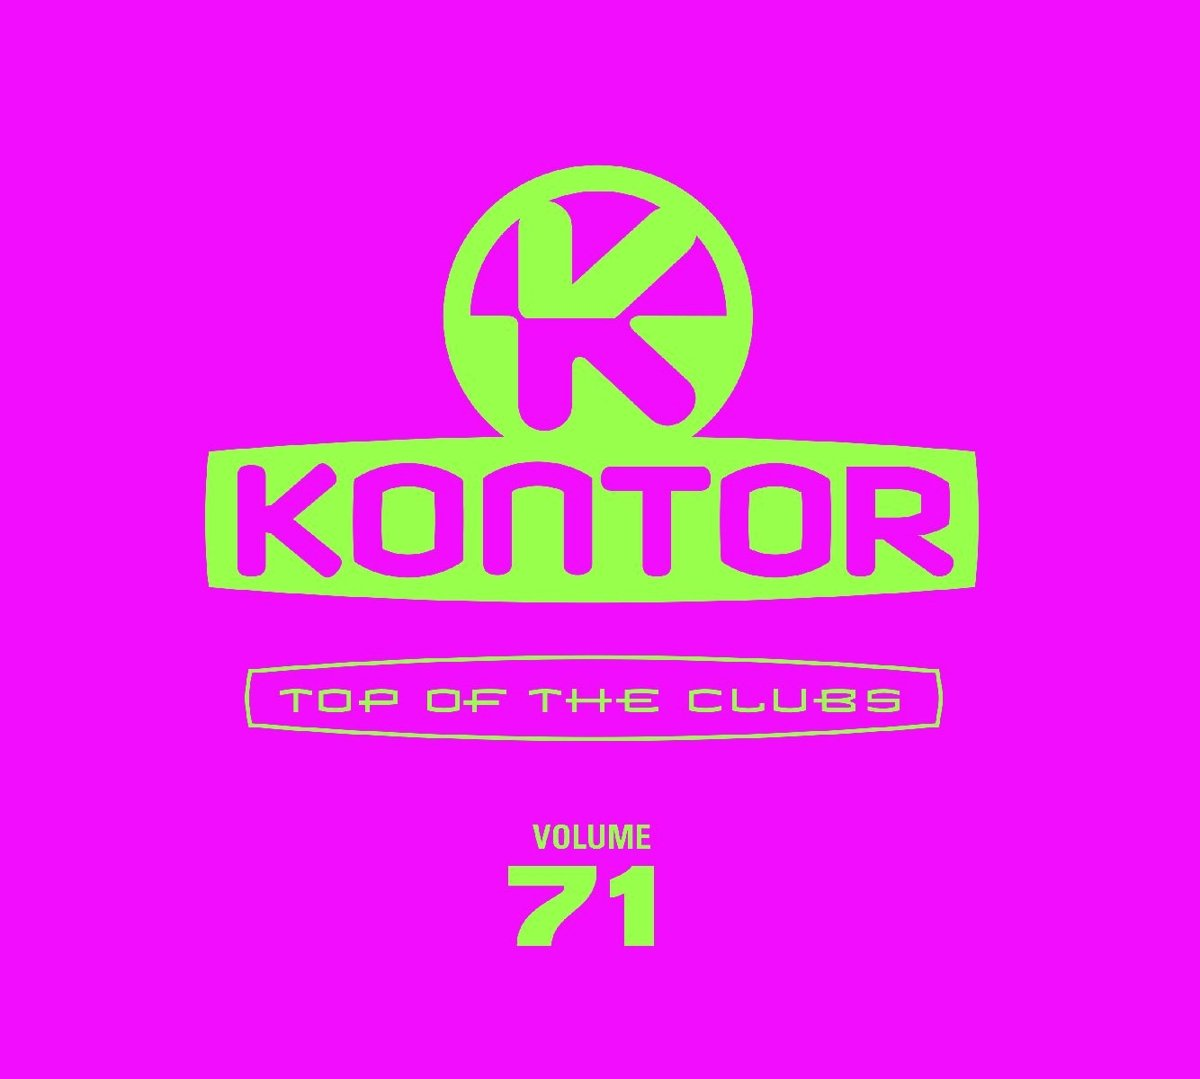 VA - Kontor Top Of The Clubs Volume 71 - PROPER - 3CD - FLAC - 2016 - NBFLAC Download